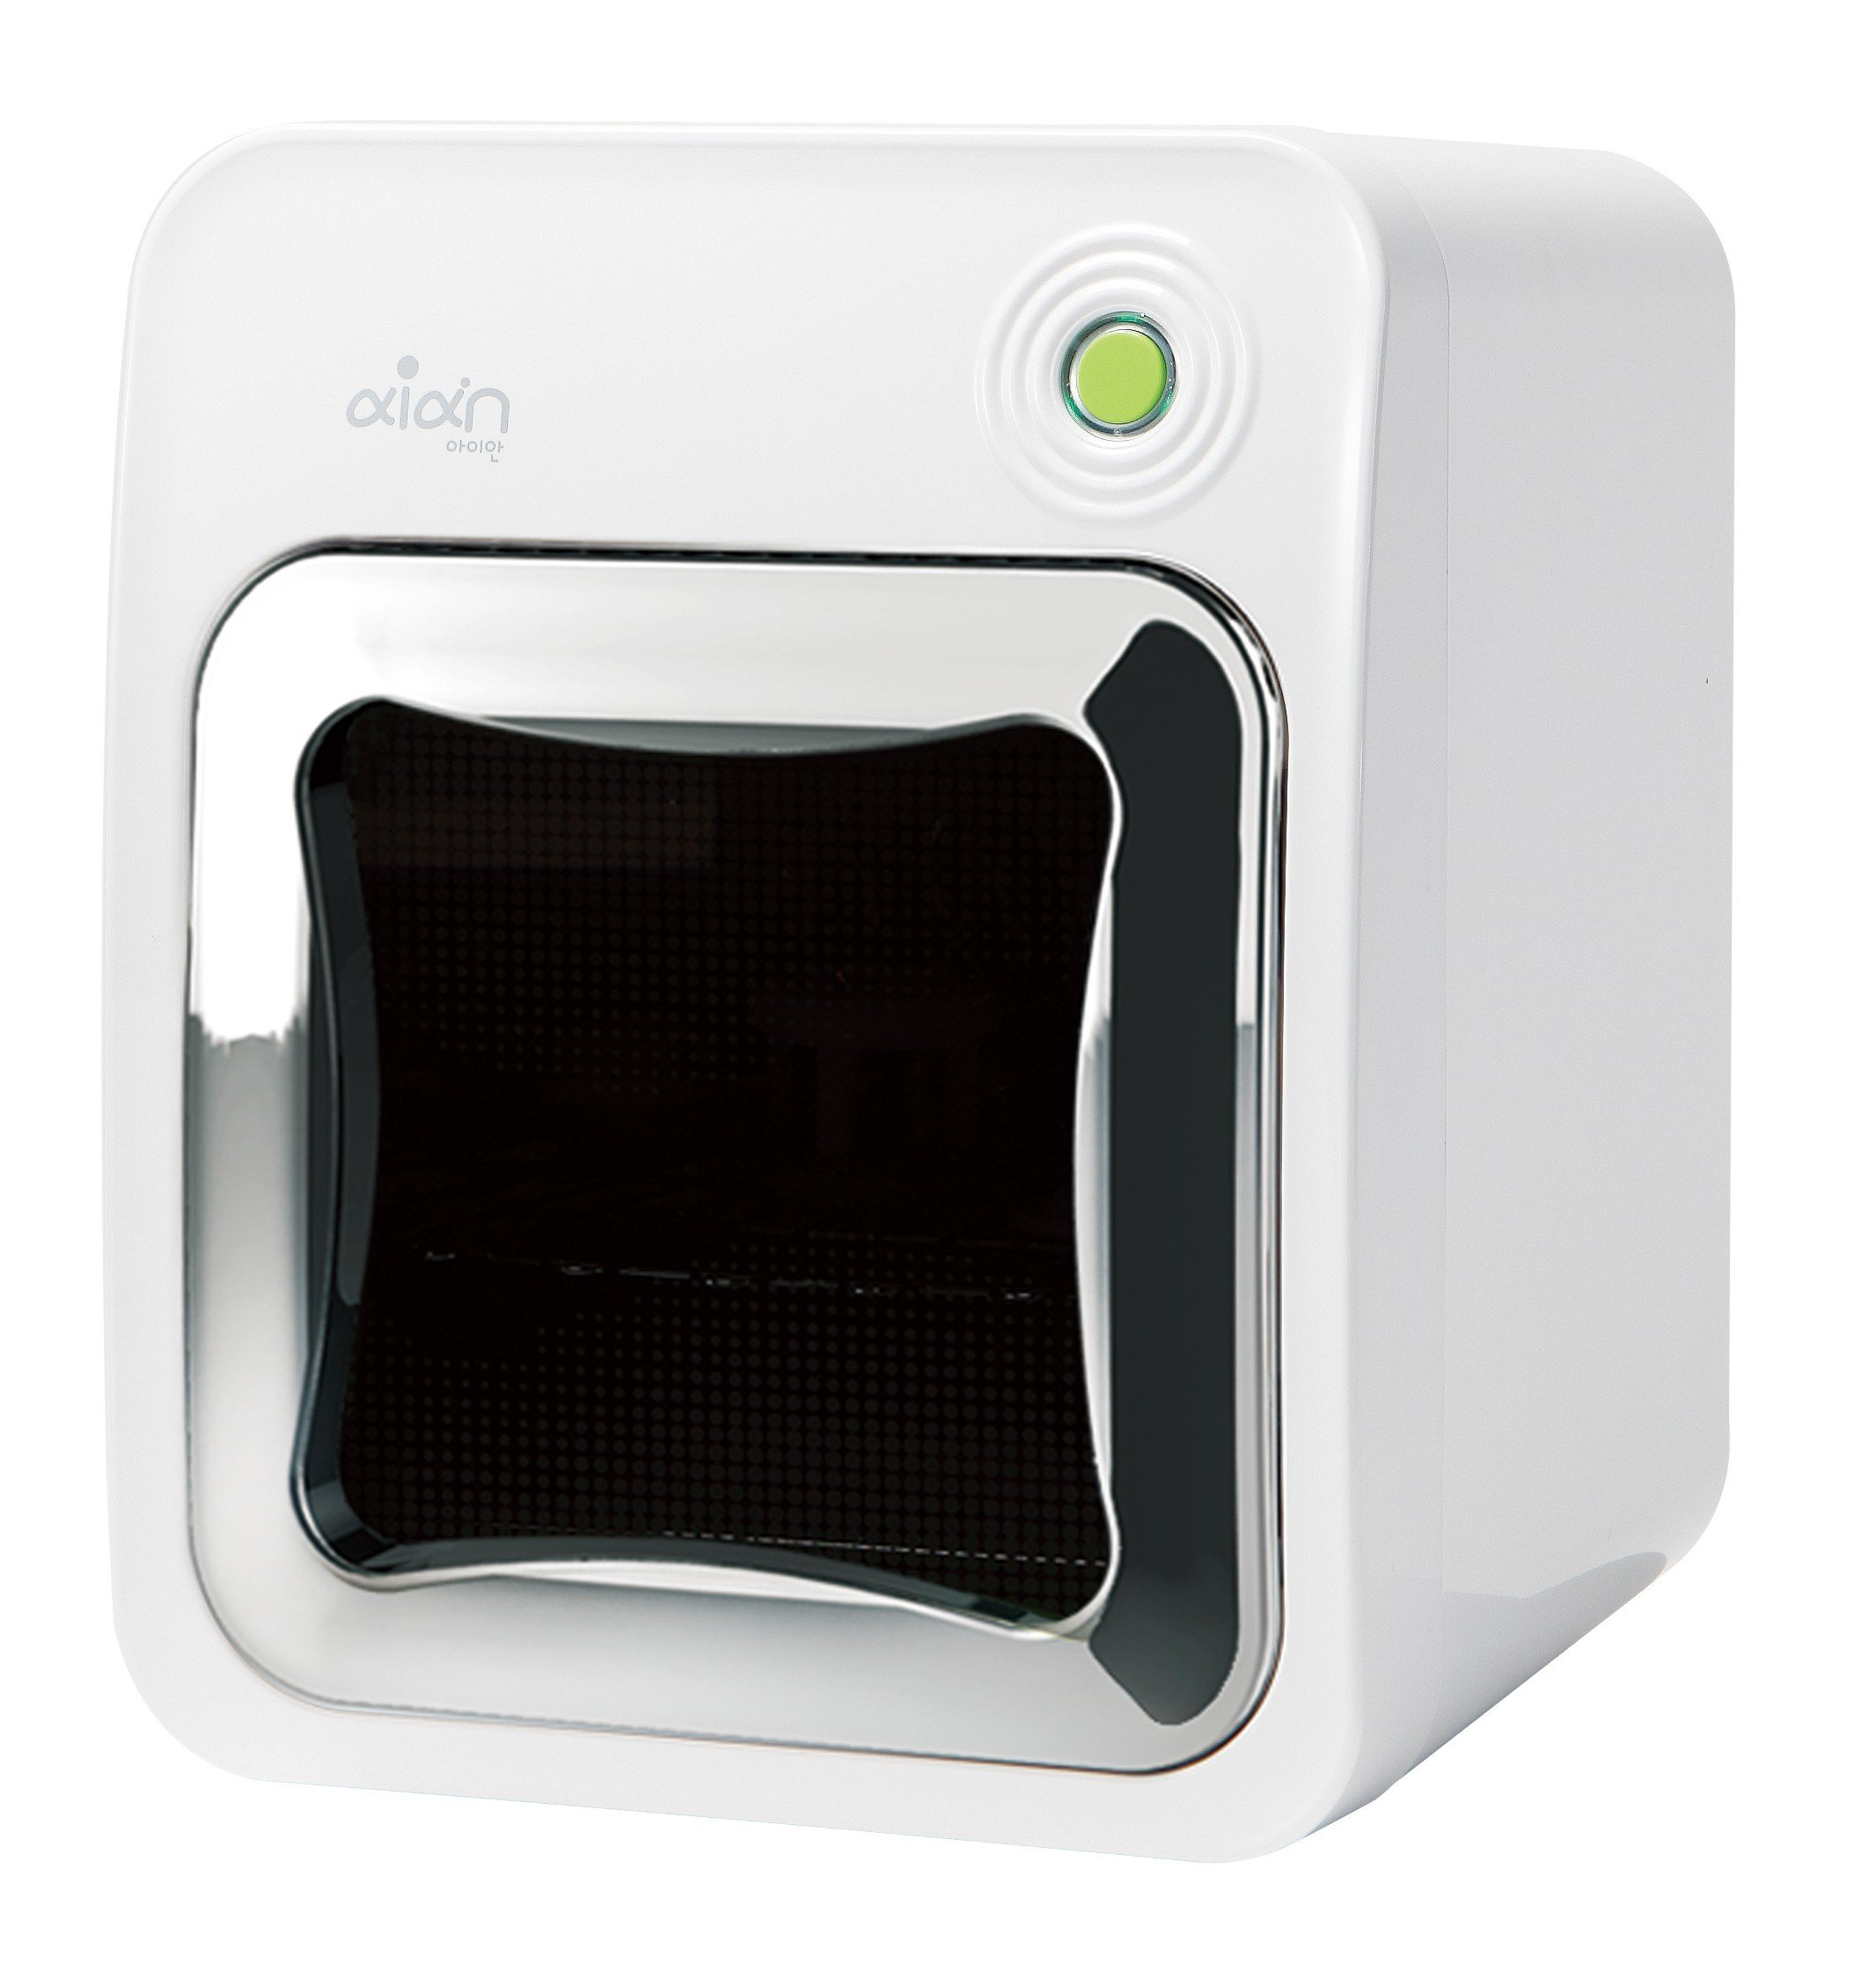 Aian Sterilizer & Dryer. Triple effect technology for quickly & effectively removing 99.99% bacteria,viruses.UV, LED InfraRed lights with patented delivery of lights. Spacious, sleek design. Audio msg